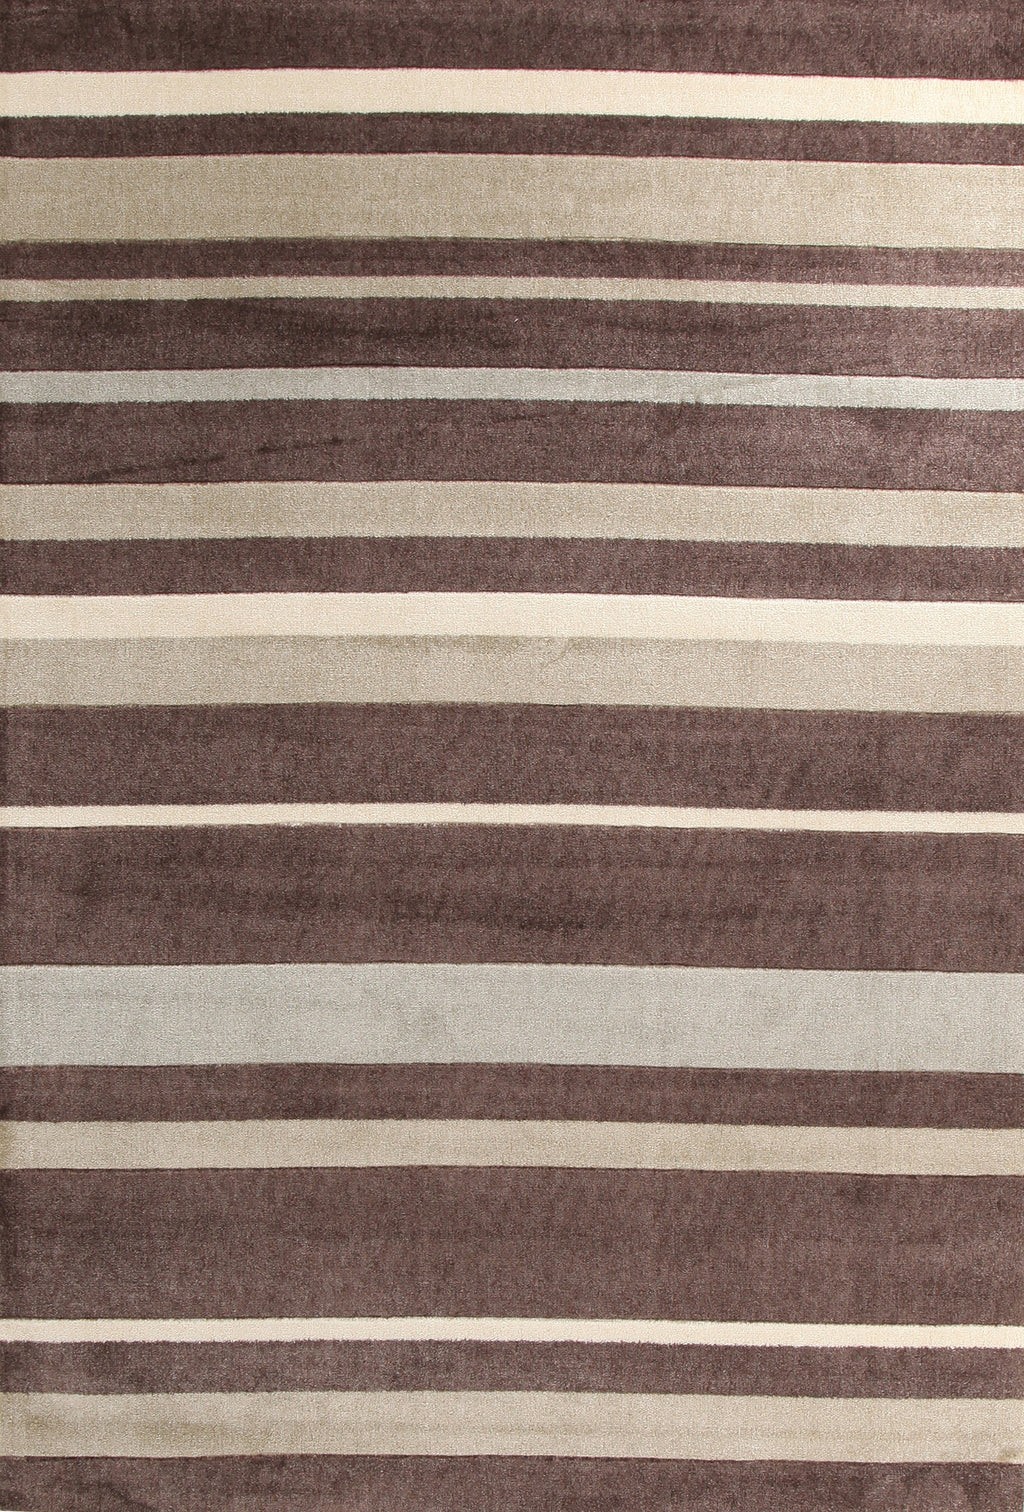 Brighton Stylish Stripe Rug Brown Beige